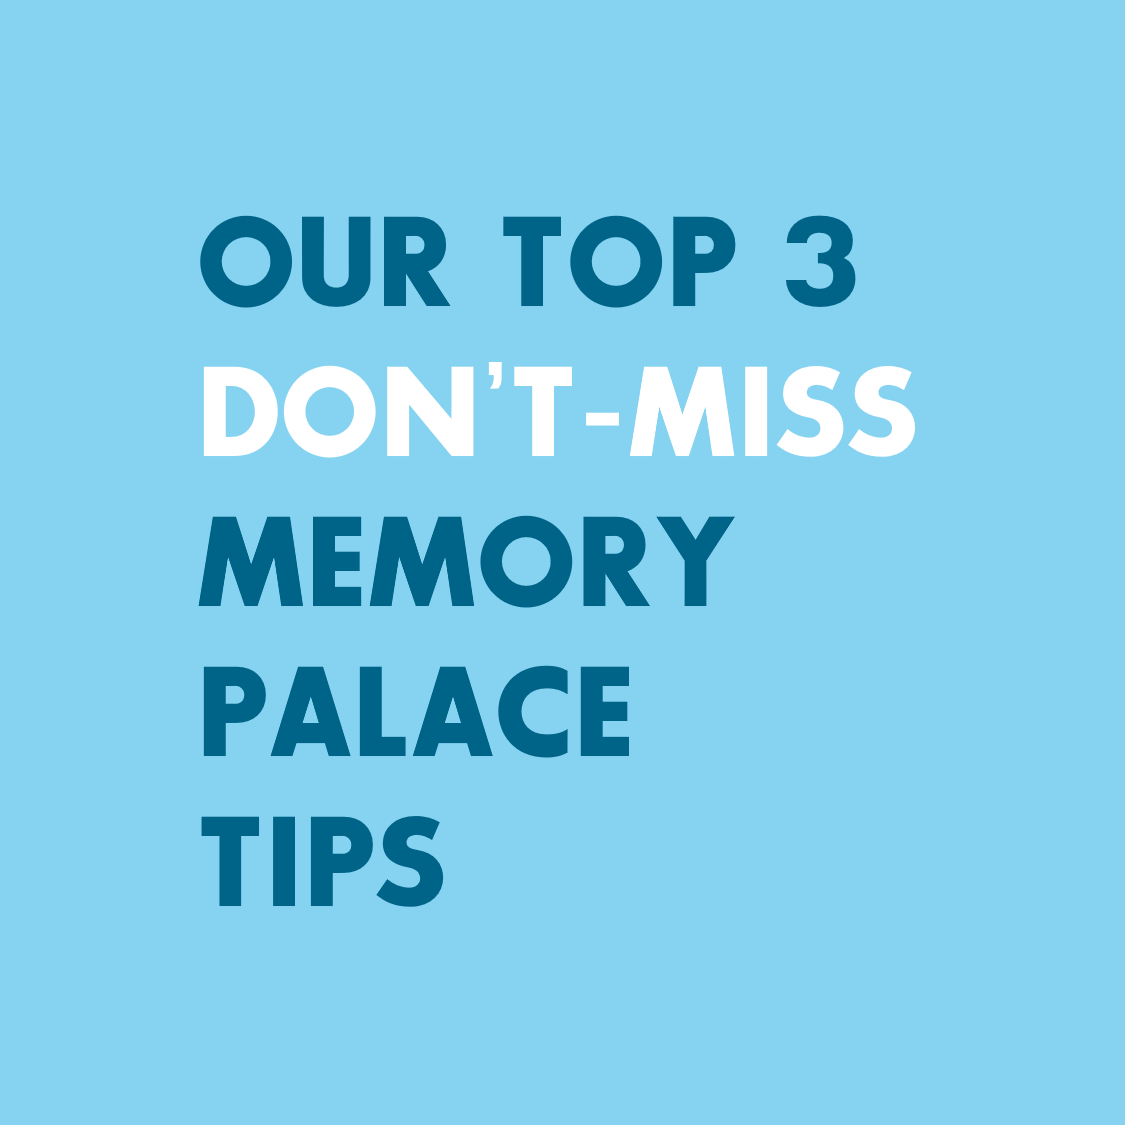 Palace of Memory: a description of the method for memorizing 48